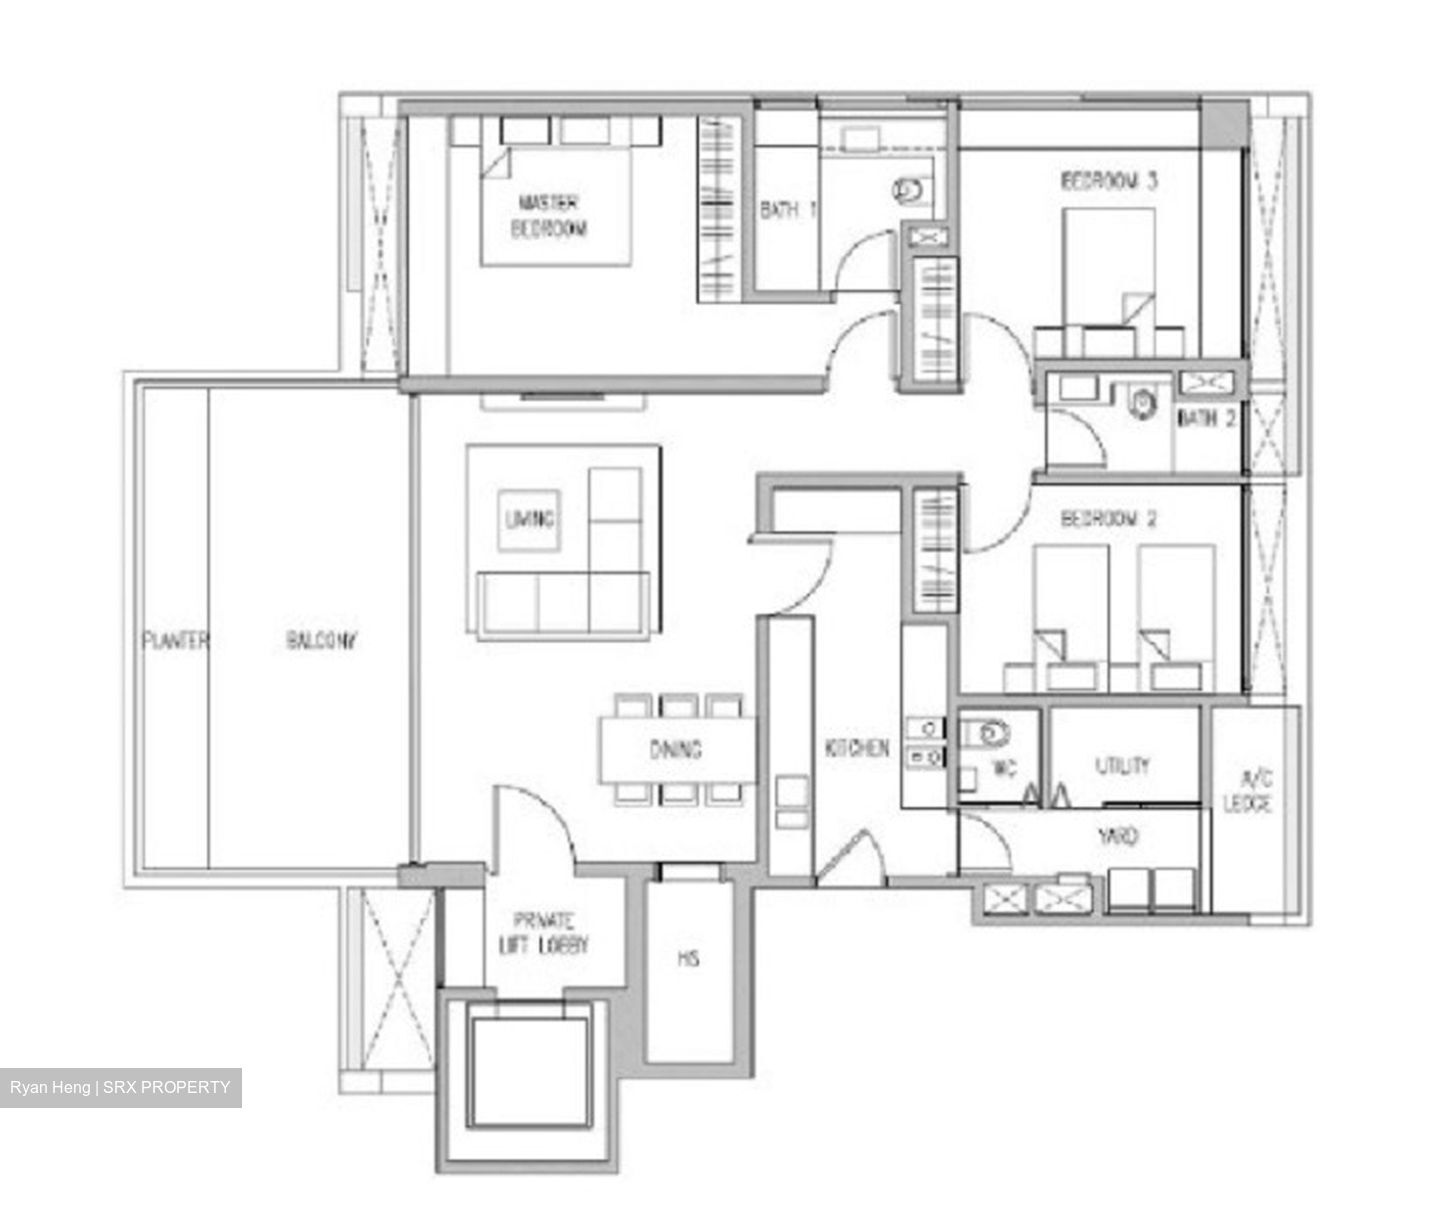 Urban Suites (D9), Condominium #280245741